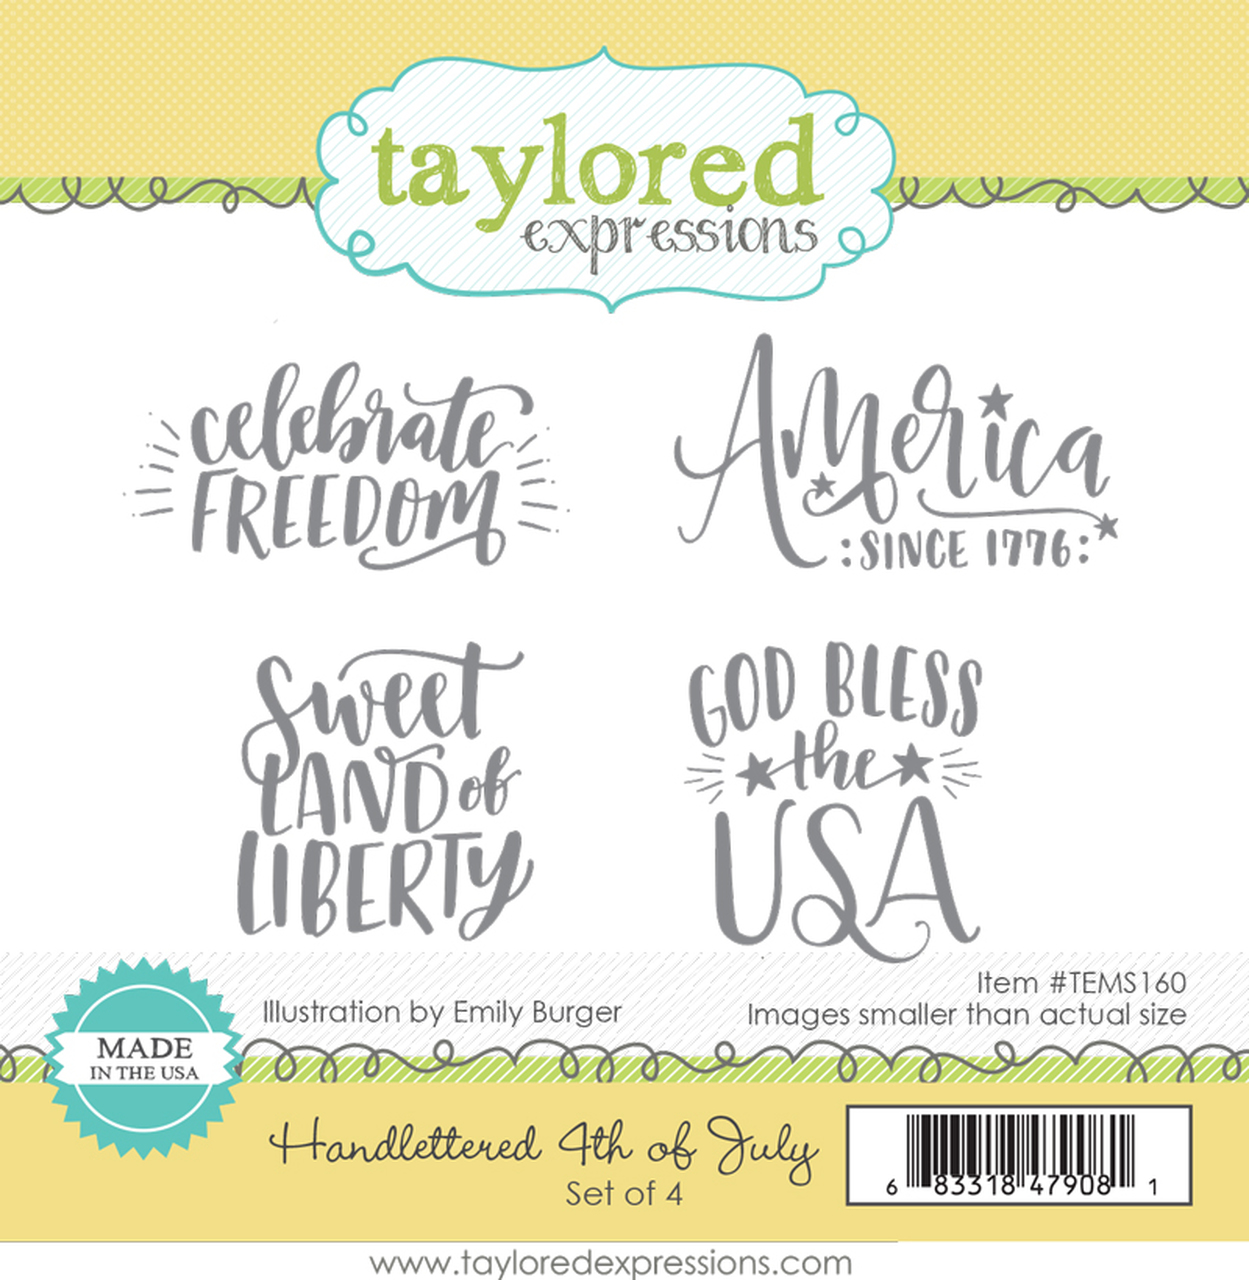 *NEW* - Taylored Expression - HANDLETTERED 4TH OF JULY